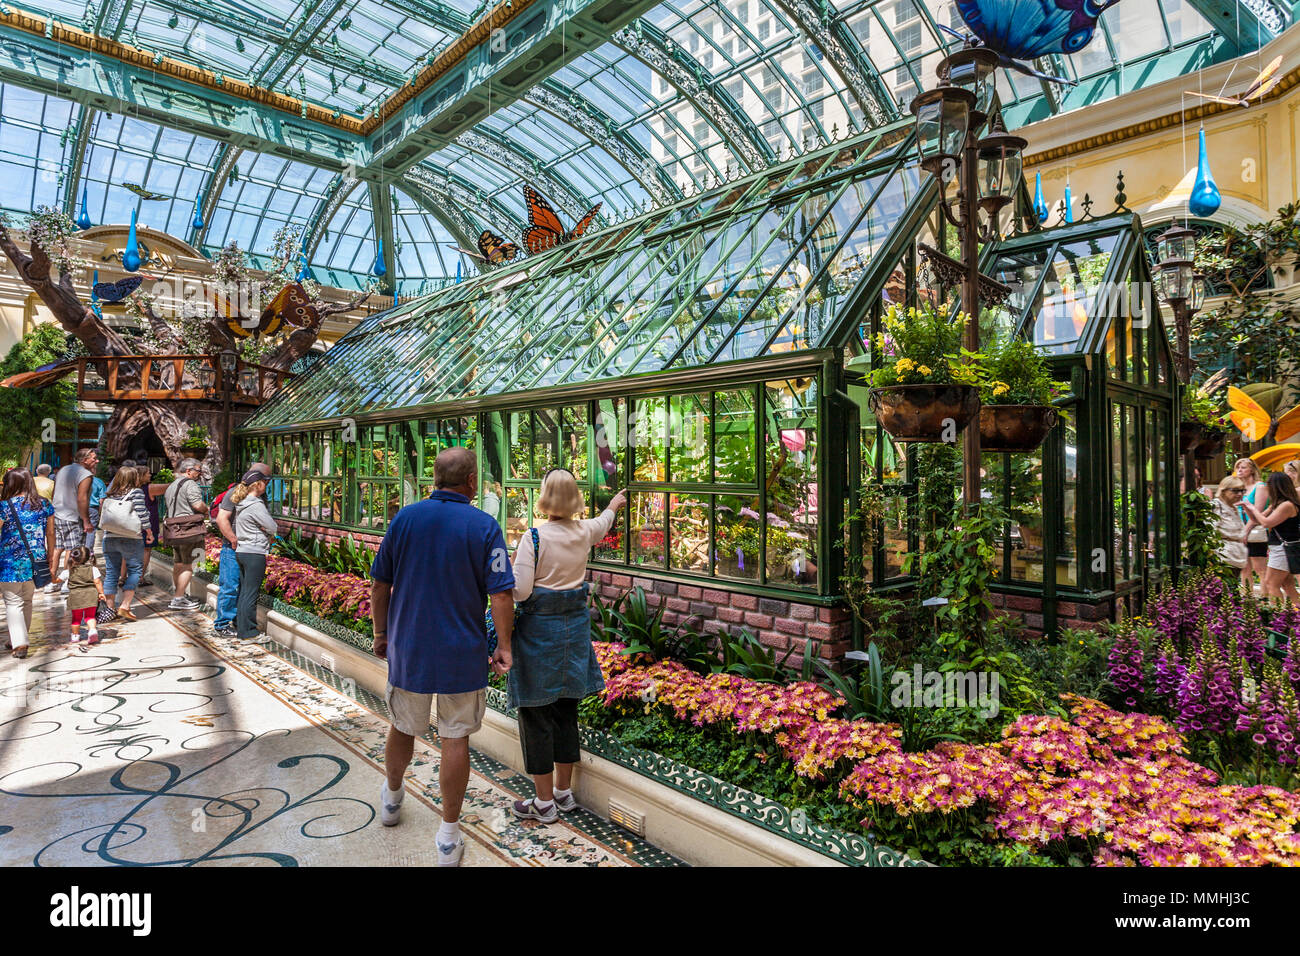 Tourists visiting Bellagio's Conservatory & Botanical Gardens in the Billagio Luxury Resort and Casino on the Las Vegas Strip in Paradise, Nevada Stock Photo